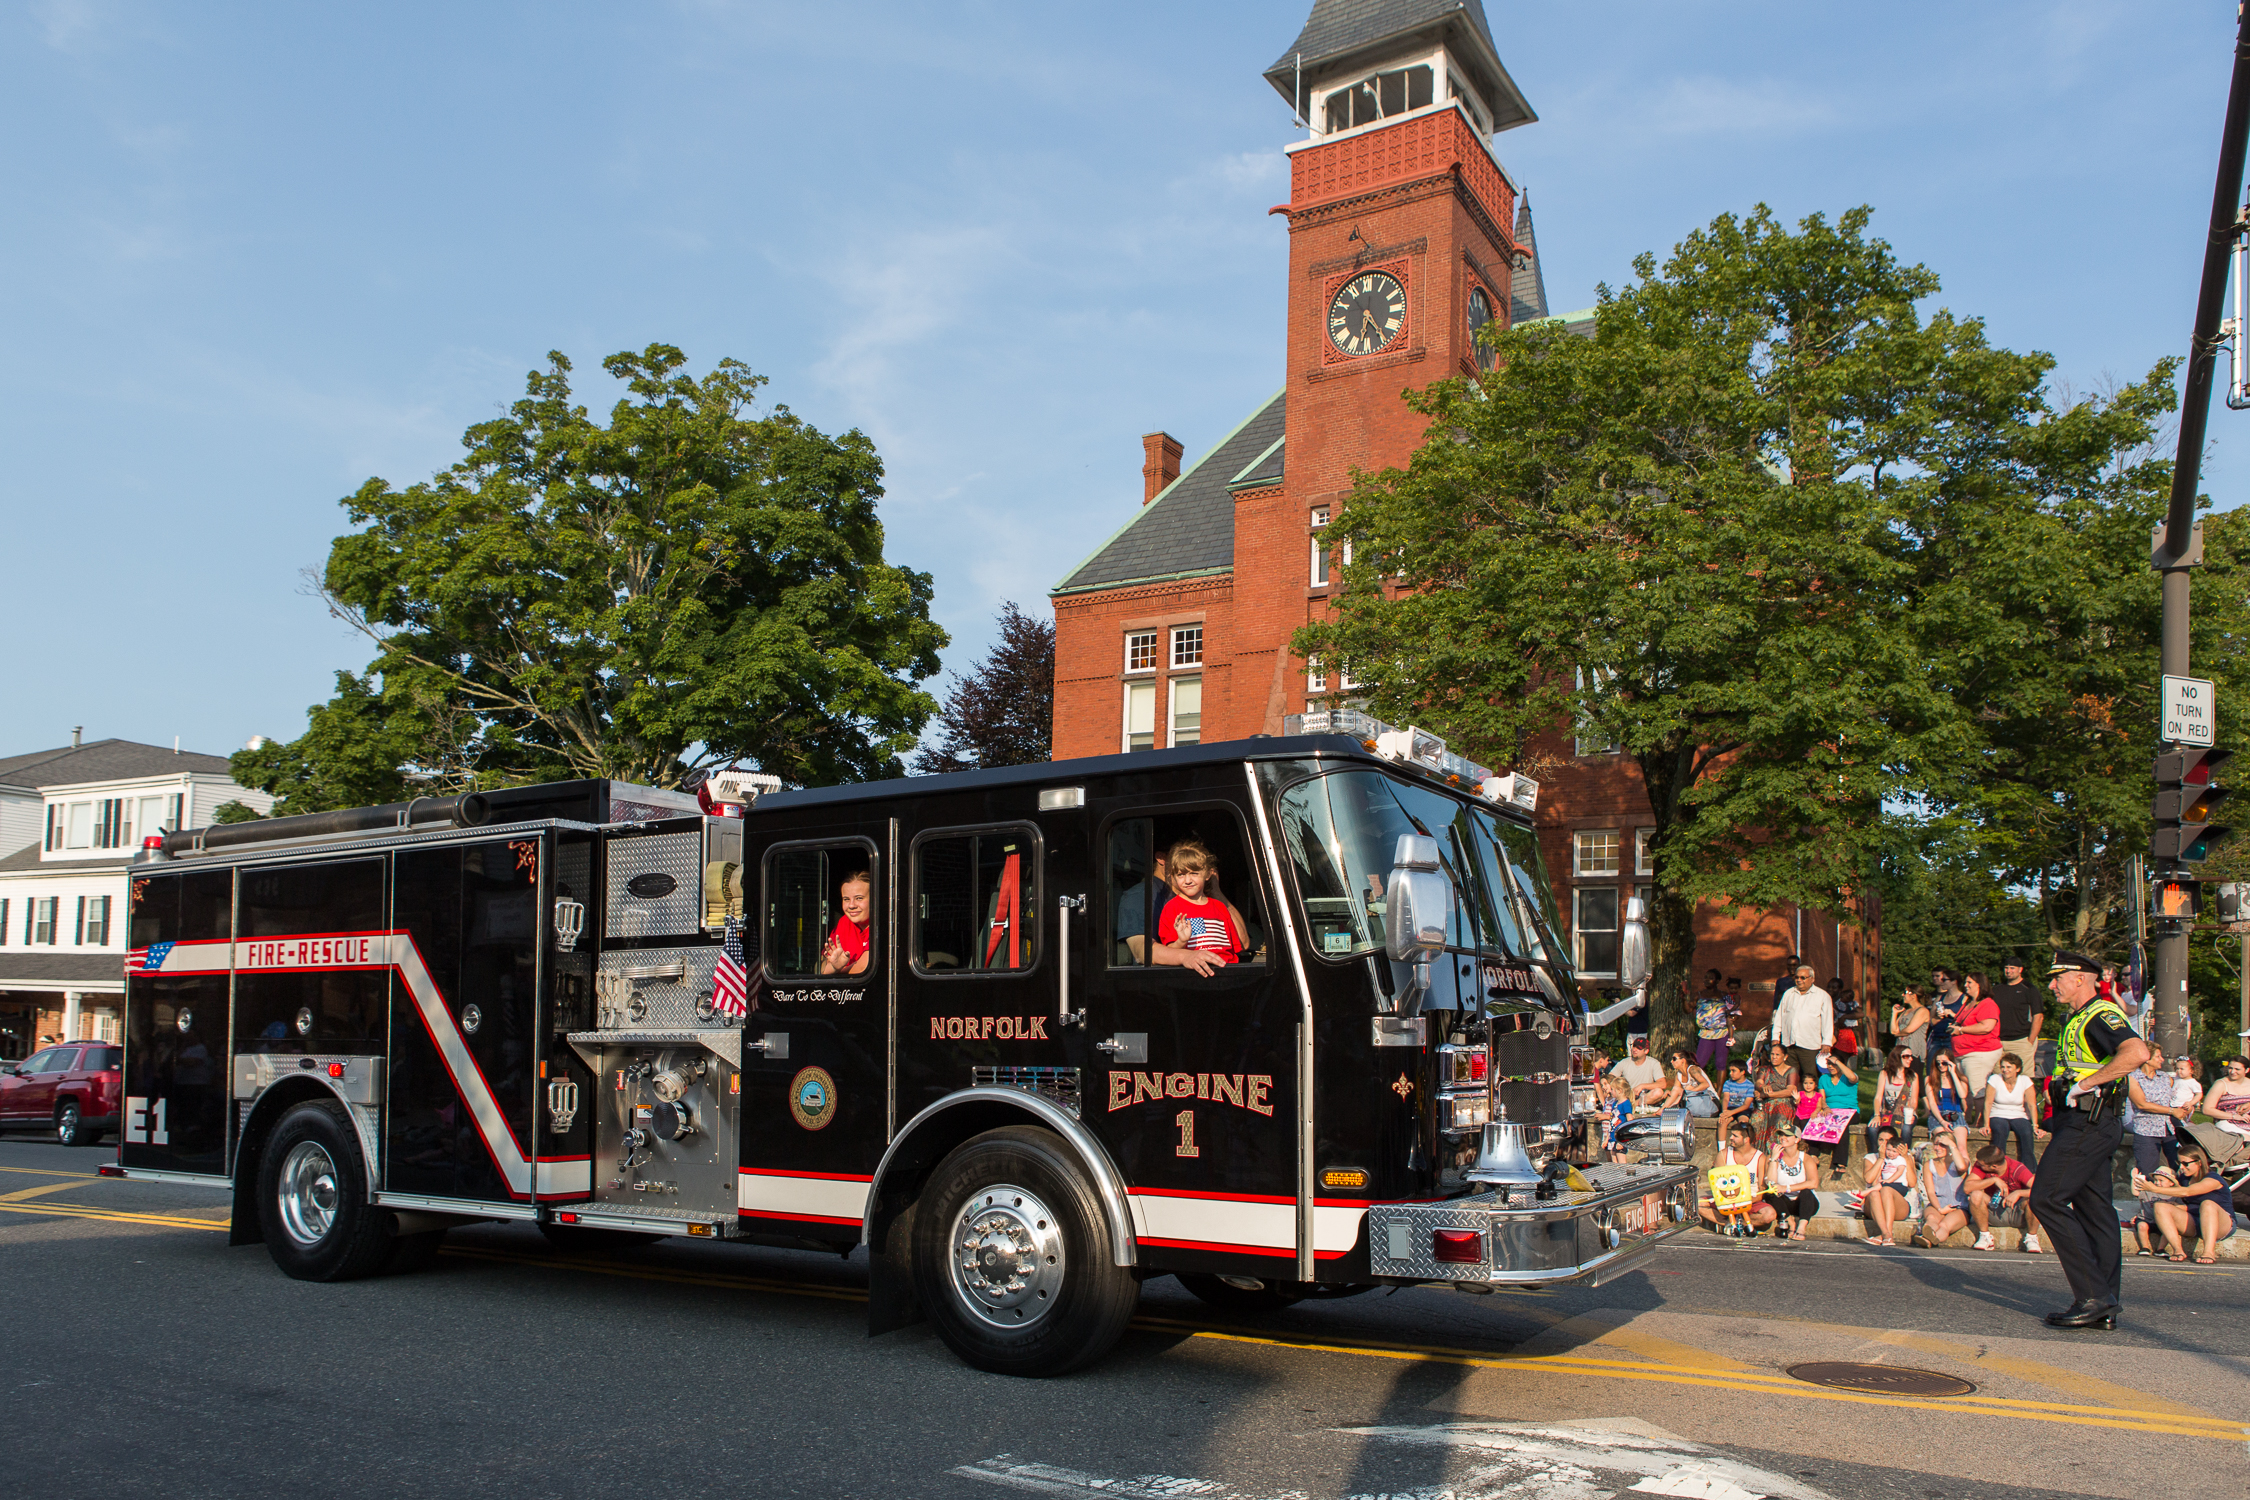 Norfolk Engine 1.